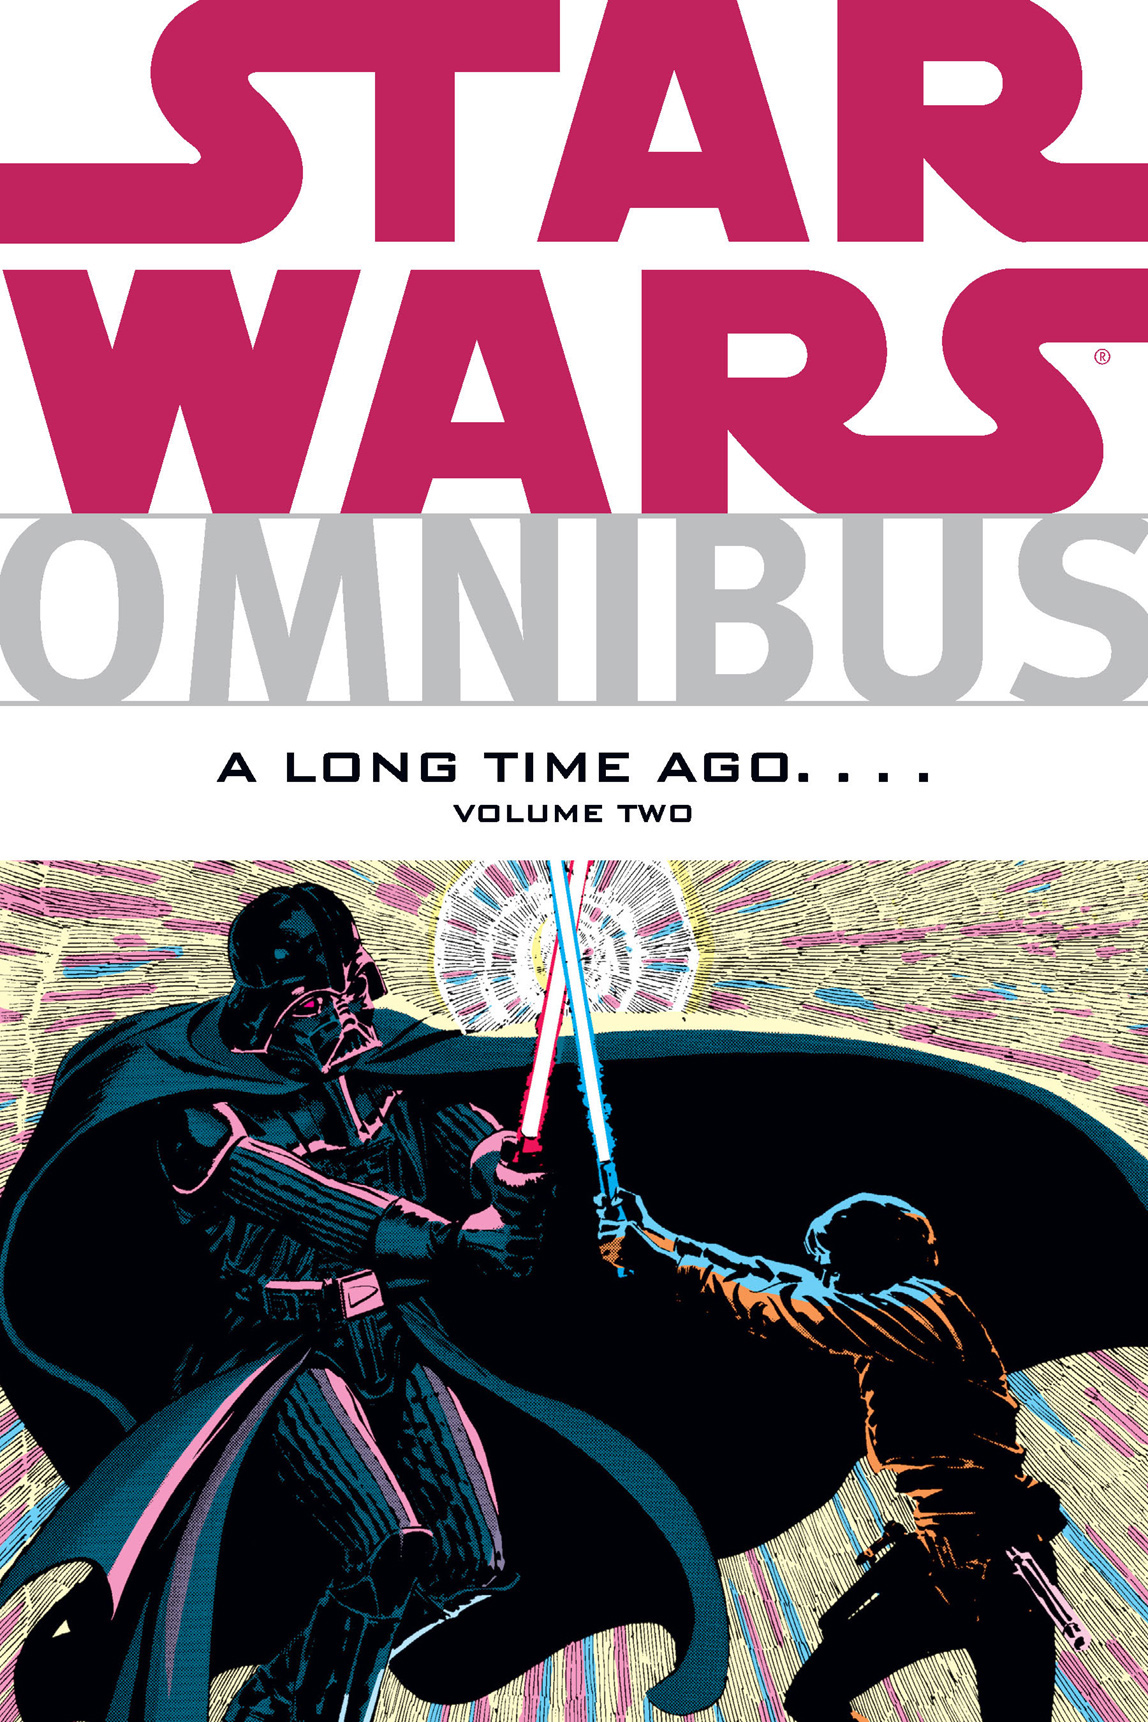 Star Wars Omnibus: A Long Time Ago…. Volume 2 By: Archie Goodwin, Chris Claremont, Michael Golden (Artist), Terry Austin (Artist), Al Williamson (Artist), Walter Simonson (Artist)